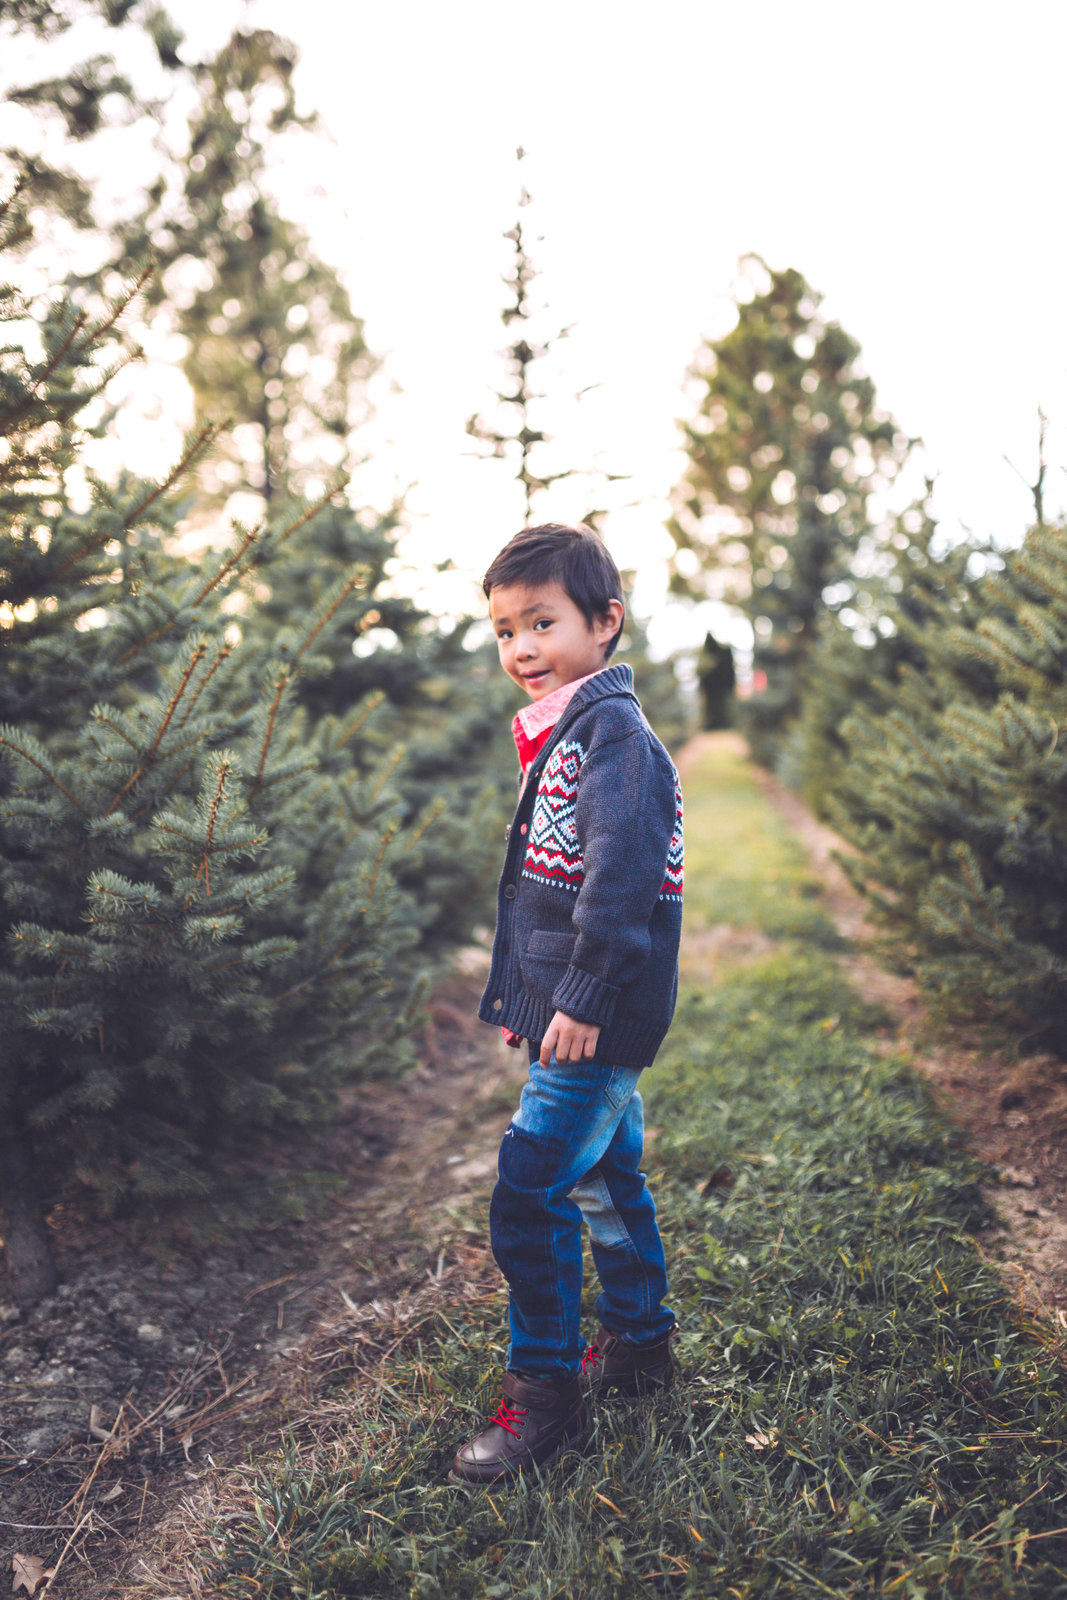 Osh Kosh B'Gosh Holiday Outfits